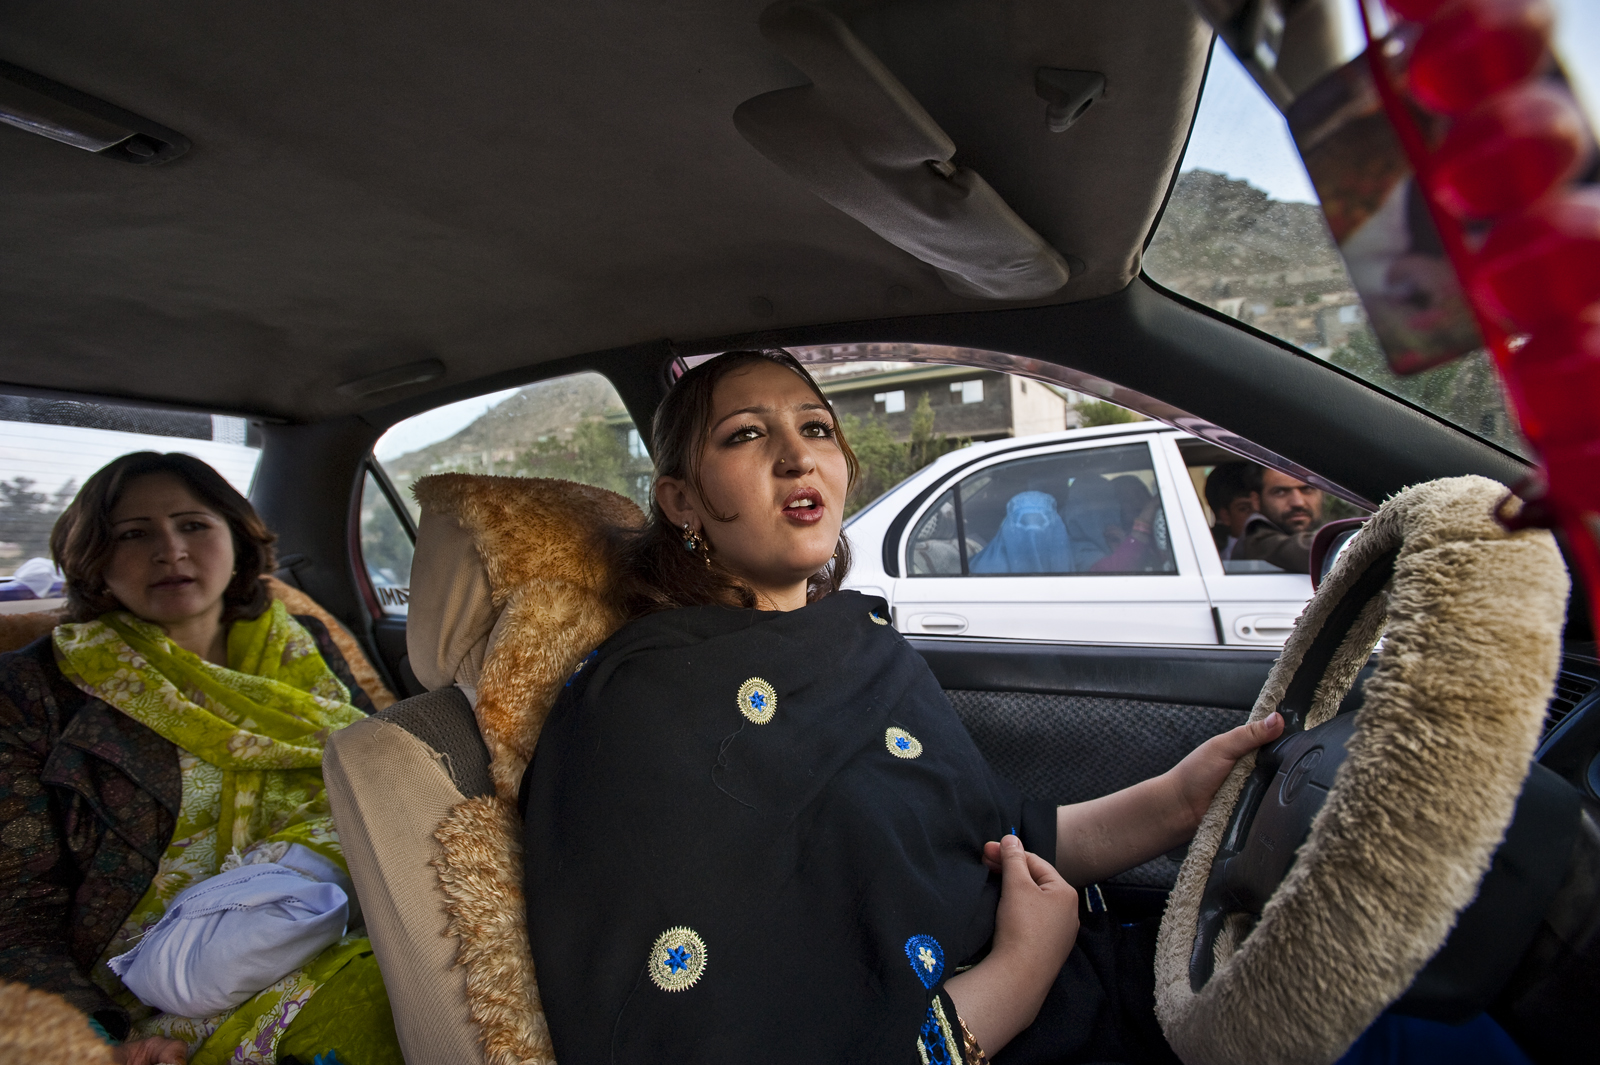 With face, hair, and arms in full view, actress Trena Amiri chauffeurs a friend around Kabul on a Friday. She blasts her favorite songs off a cassette and shimmies and sings along, tapping the steering wheel as she dances in the driver's seat. Even in relatively progressive Kabul, men and women glare, honk, and scream at her. It provokes men in Afghanistan to see strong women. It symbolizes a freedom they just aren't comfortable with. Amiri fled her husband of seven years, who, she says, kept her home and beat her. She left her three sons behind. She doesn't plan to remarry but knows she might have to in order to survive in Afghanistan, where women are dependent on men for so many things. When I ask about her current boyfriend, whose name is on the gold bracelet around her wrist, she says she couldn't marry him: {quote}He won't let me act anymore, and I want to continue my art.{quote}